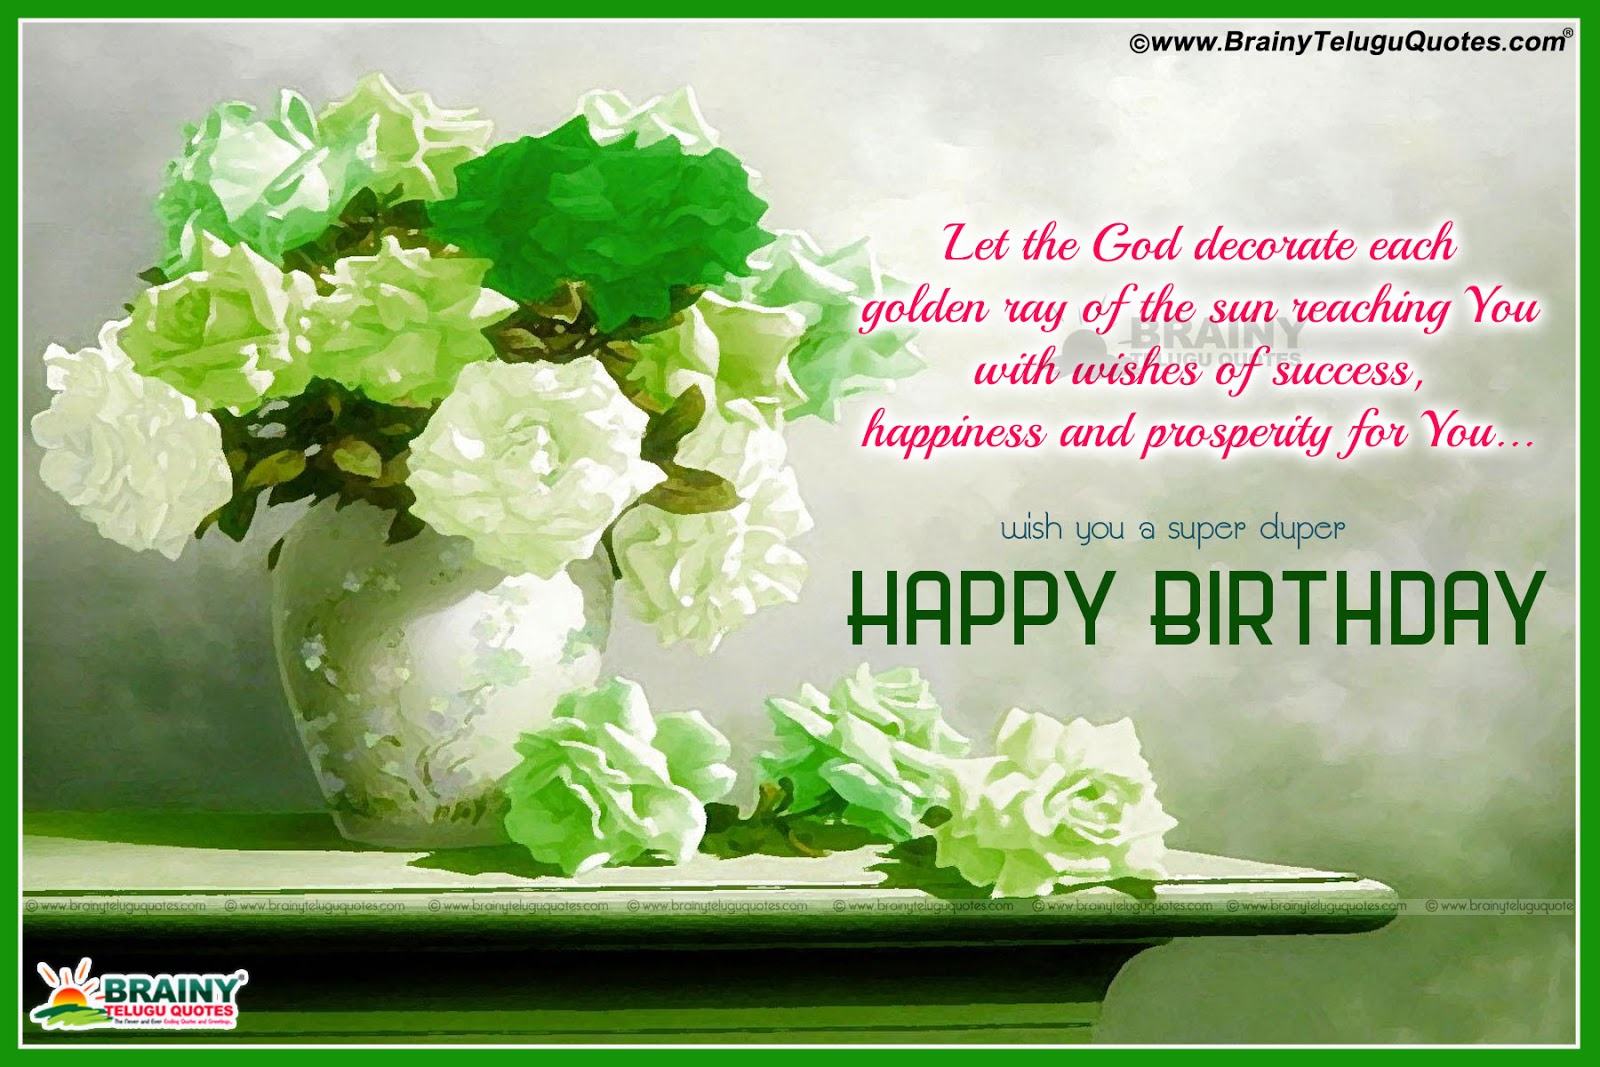 Quotes about birthday english 24 quotes httpbrainyteluguquotes201607englisg happy birthday quotations wishes greeting cards with bookey flowers wallpapersml izmirmasajfo Image collections